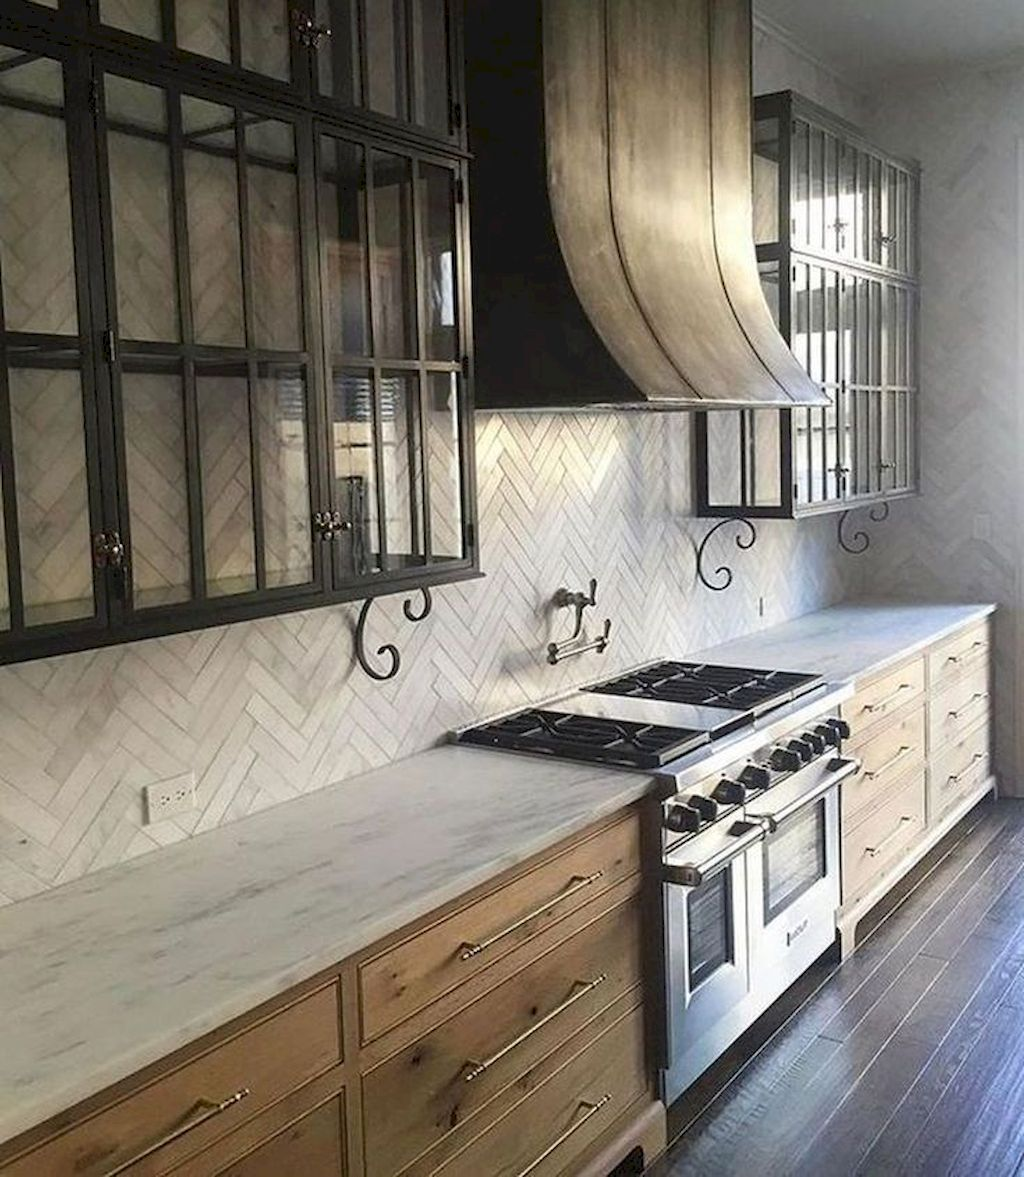 Fabulous kitchen backsplash ideas for a clean culinary experience